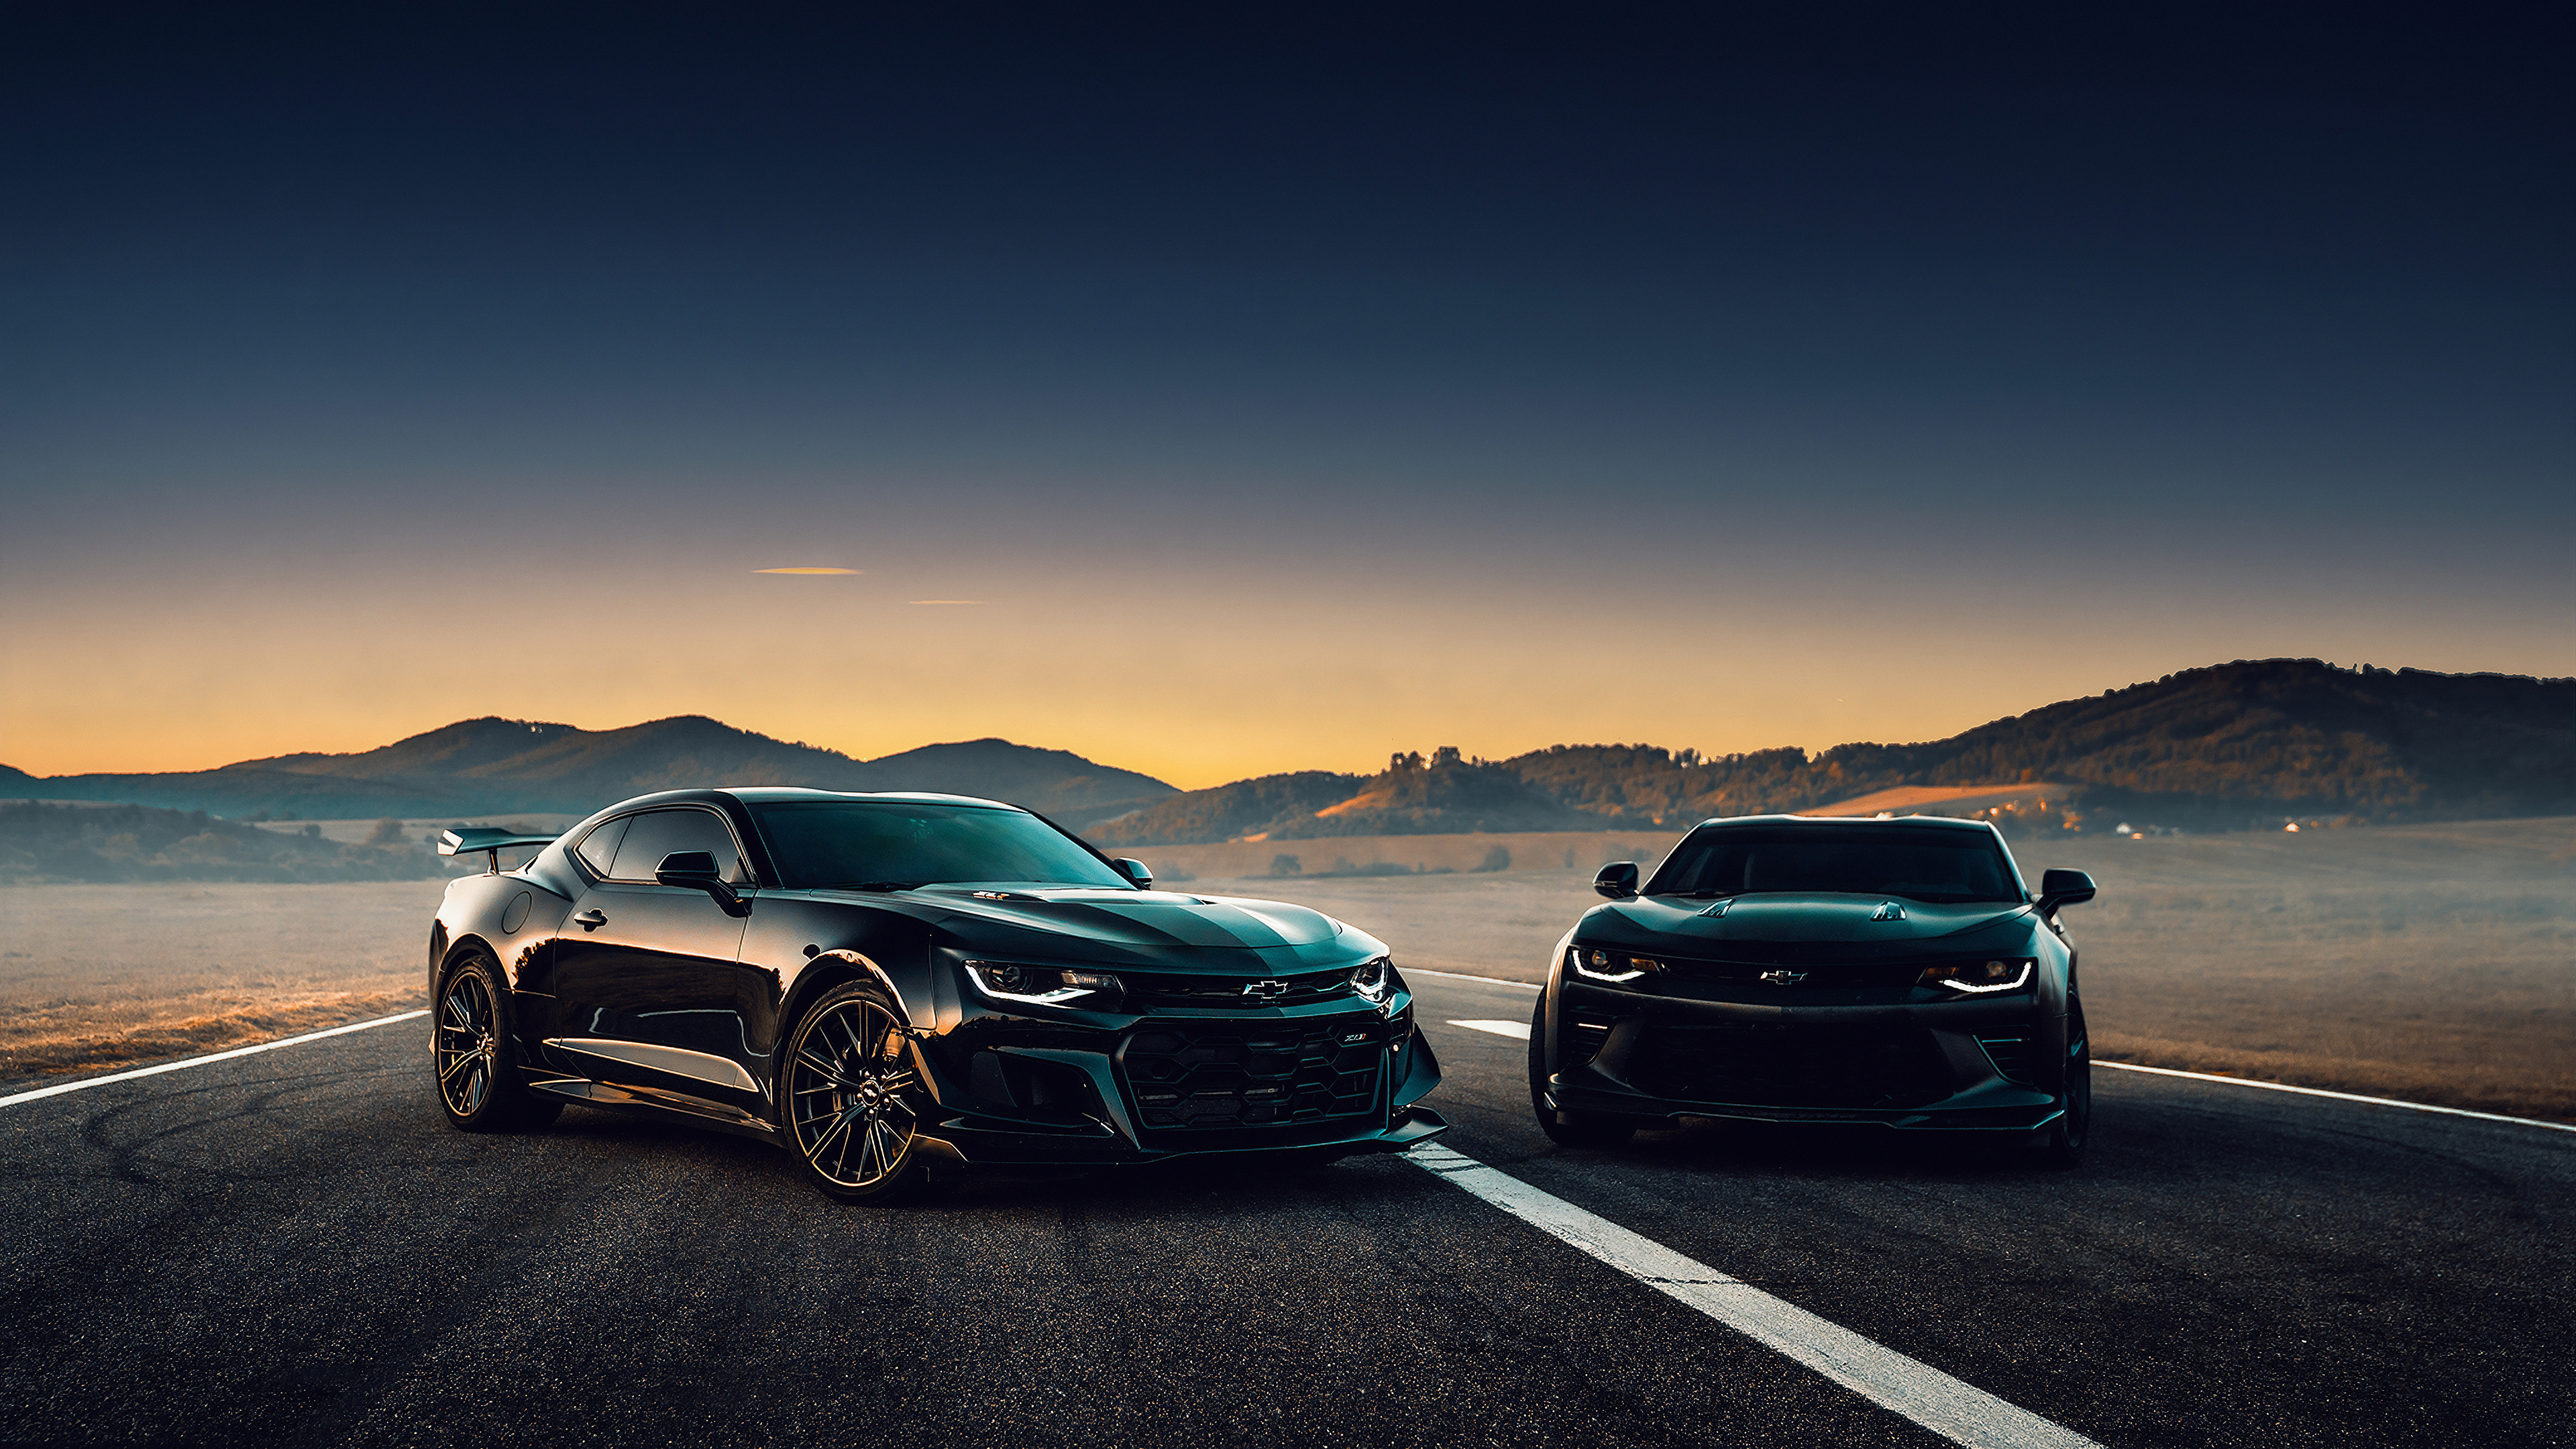 black camaro on road side 1572661099 - Black Camaro On Road Side - hd-wallpapers, chevrolet wallpapers, chevrolet camaro wallpapers, cars wallpapers, 4k-wallpapers